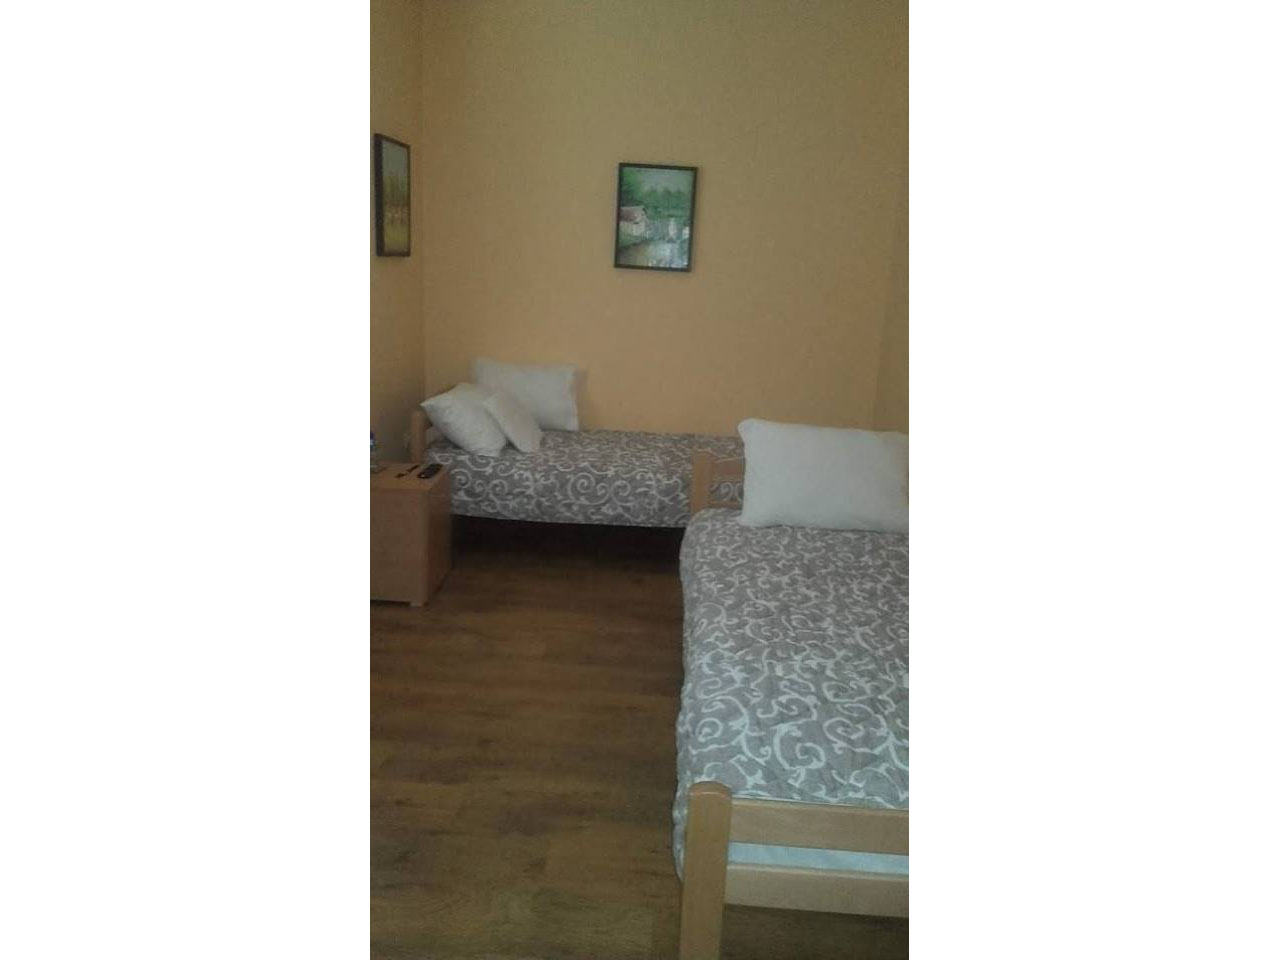 HOME FOR ADULTS AND THE ELDERLY NANINI KONACI Adult care home Zrenjanin - Photo 8